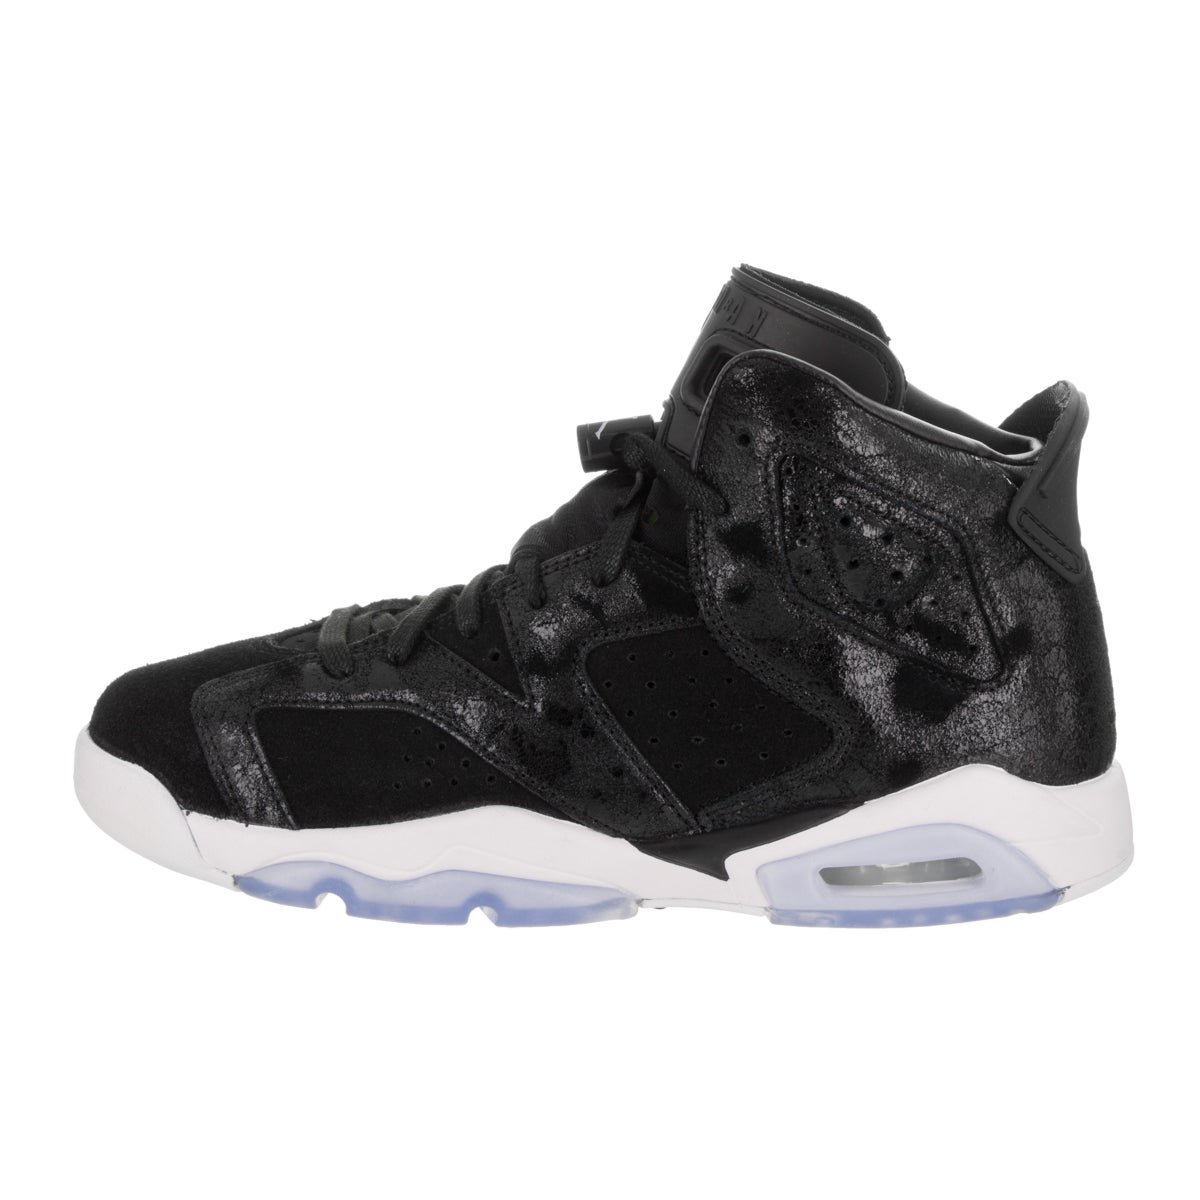 promo code 015db 6b55c Shop Nike Jordan Kids Air Jordan 6 Retro Prem HC GG Basketball Shoe - Free  Shipping Today - Overstock - 15858351